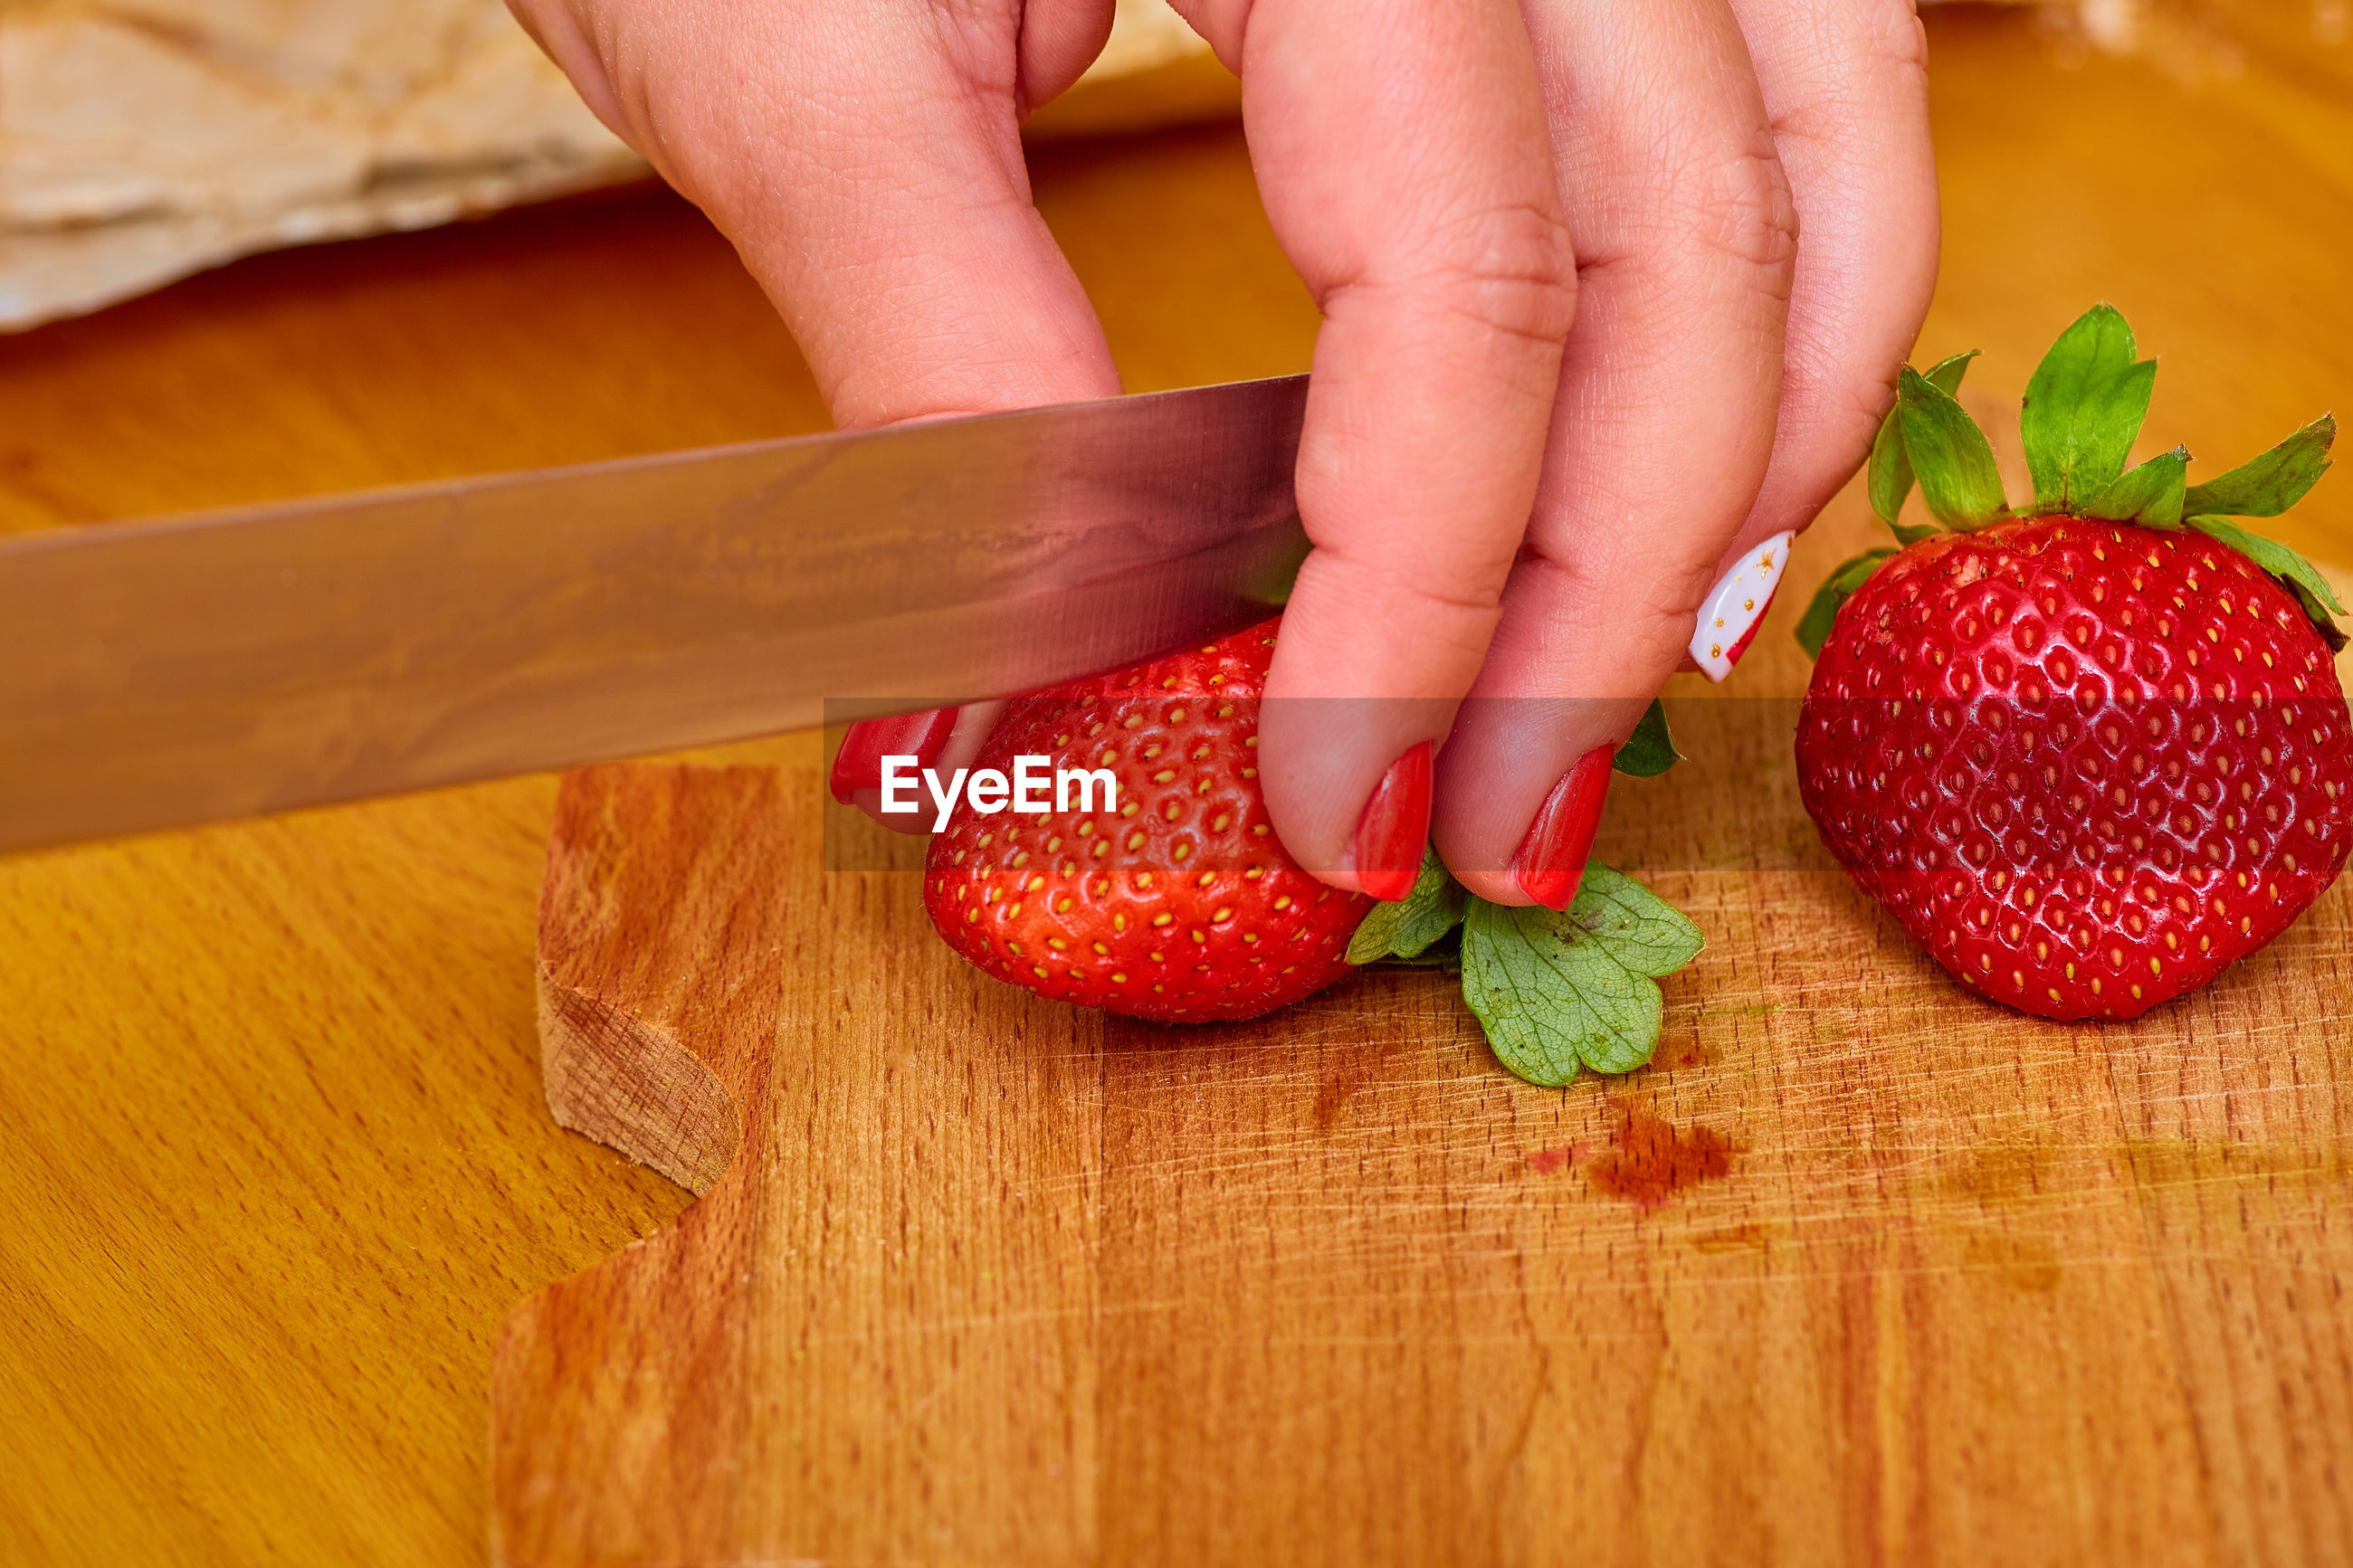 MIDSECTION OF PERSON HOLDING STRAWBERRY ON TABLE